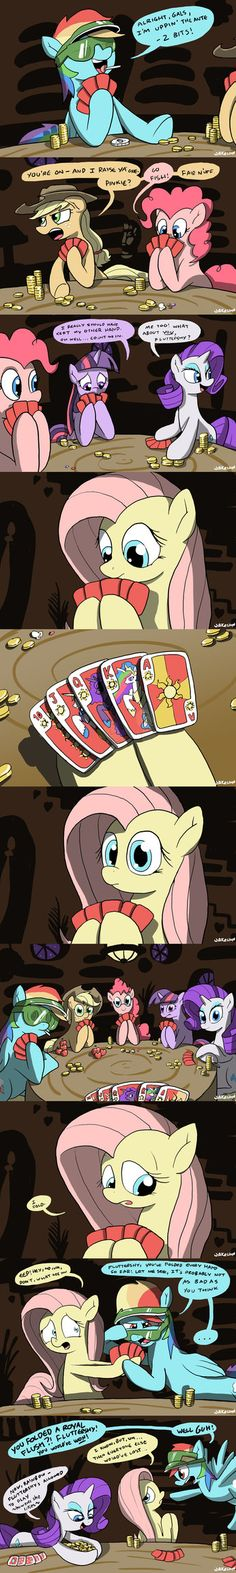 Gambling Ponies.... (I don't like that their gambling but it's still pretty funny!)